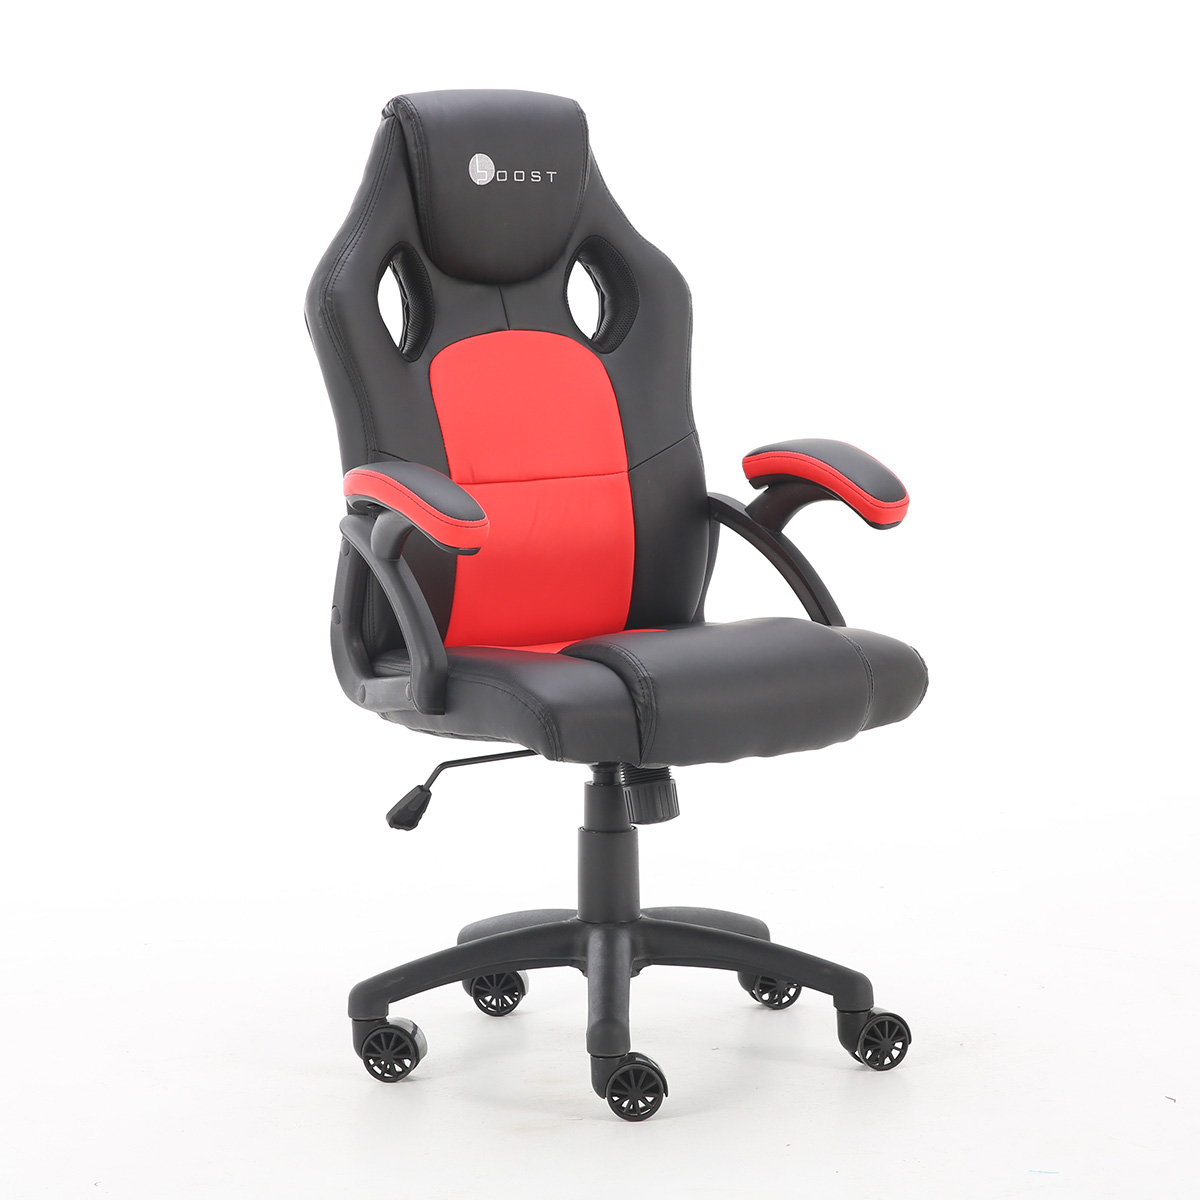 GC-305 Mid-Back Gaming Chair Formula Red